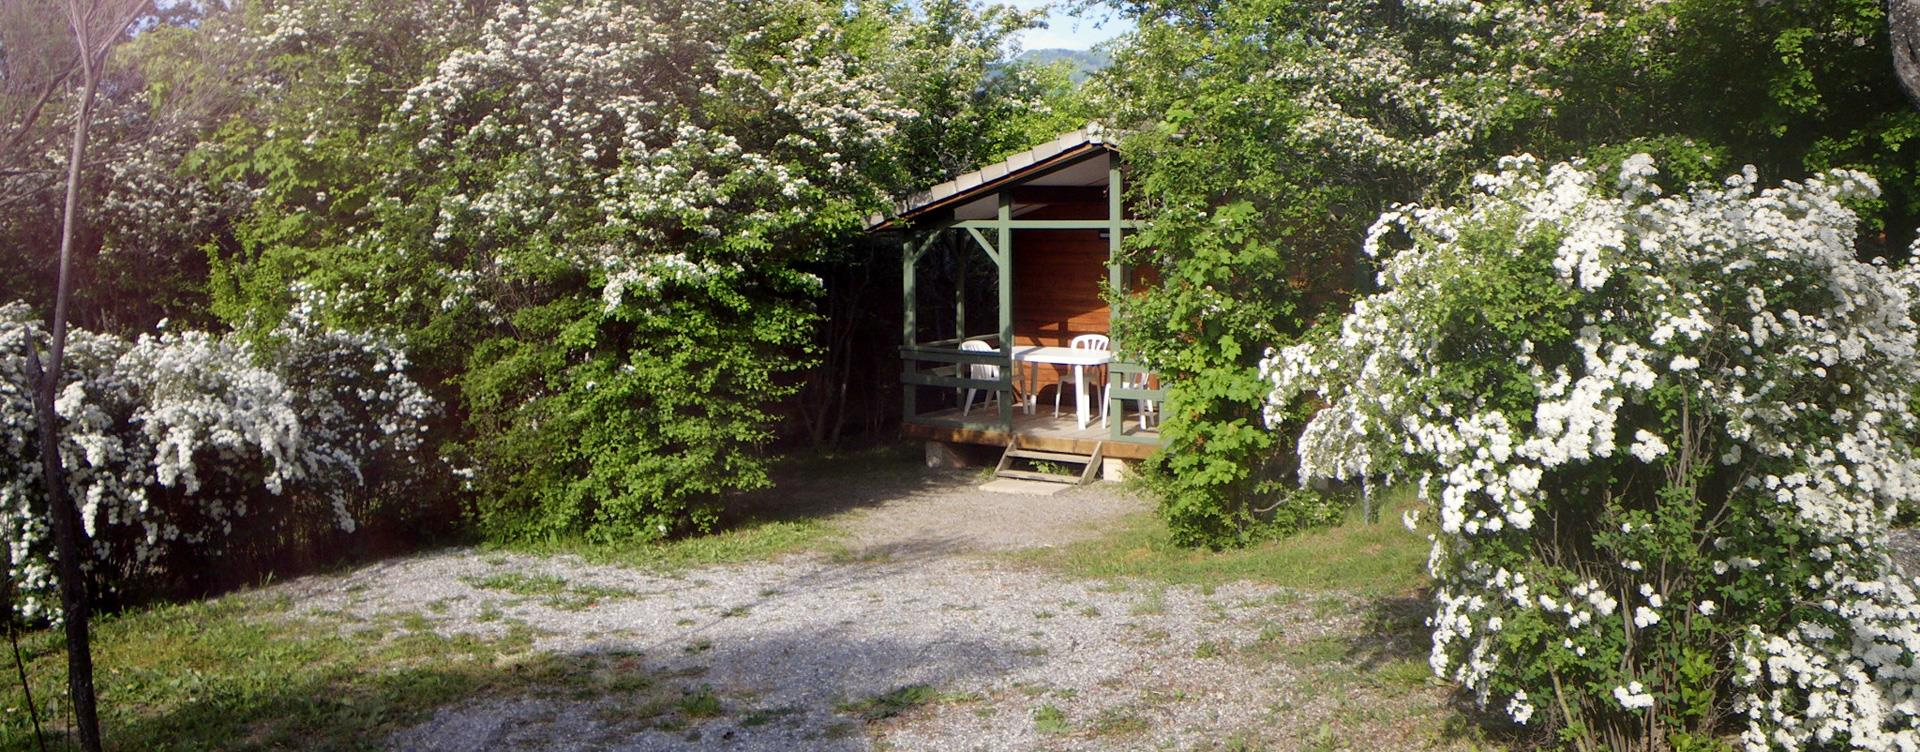 Chalet rental in Camping le Roustou in the Hautes-Alpes